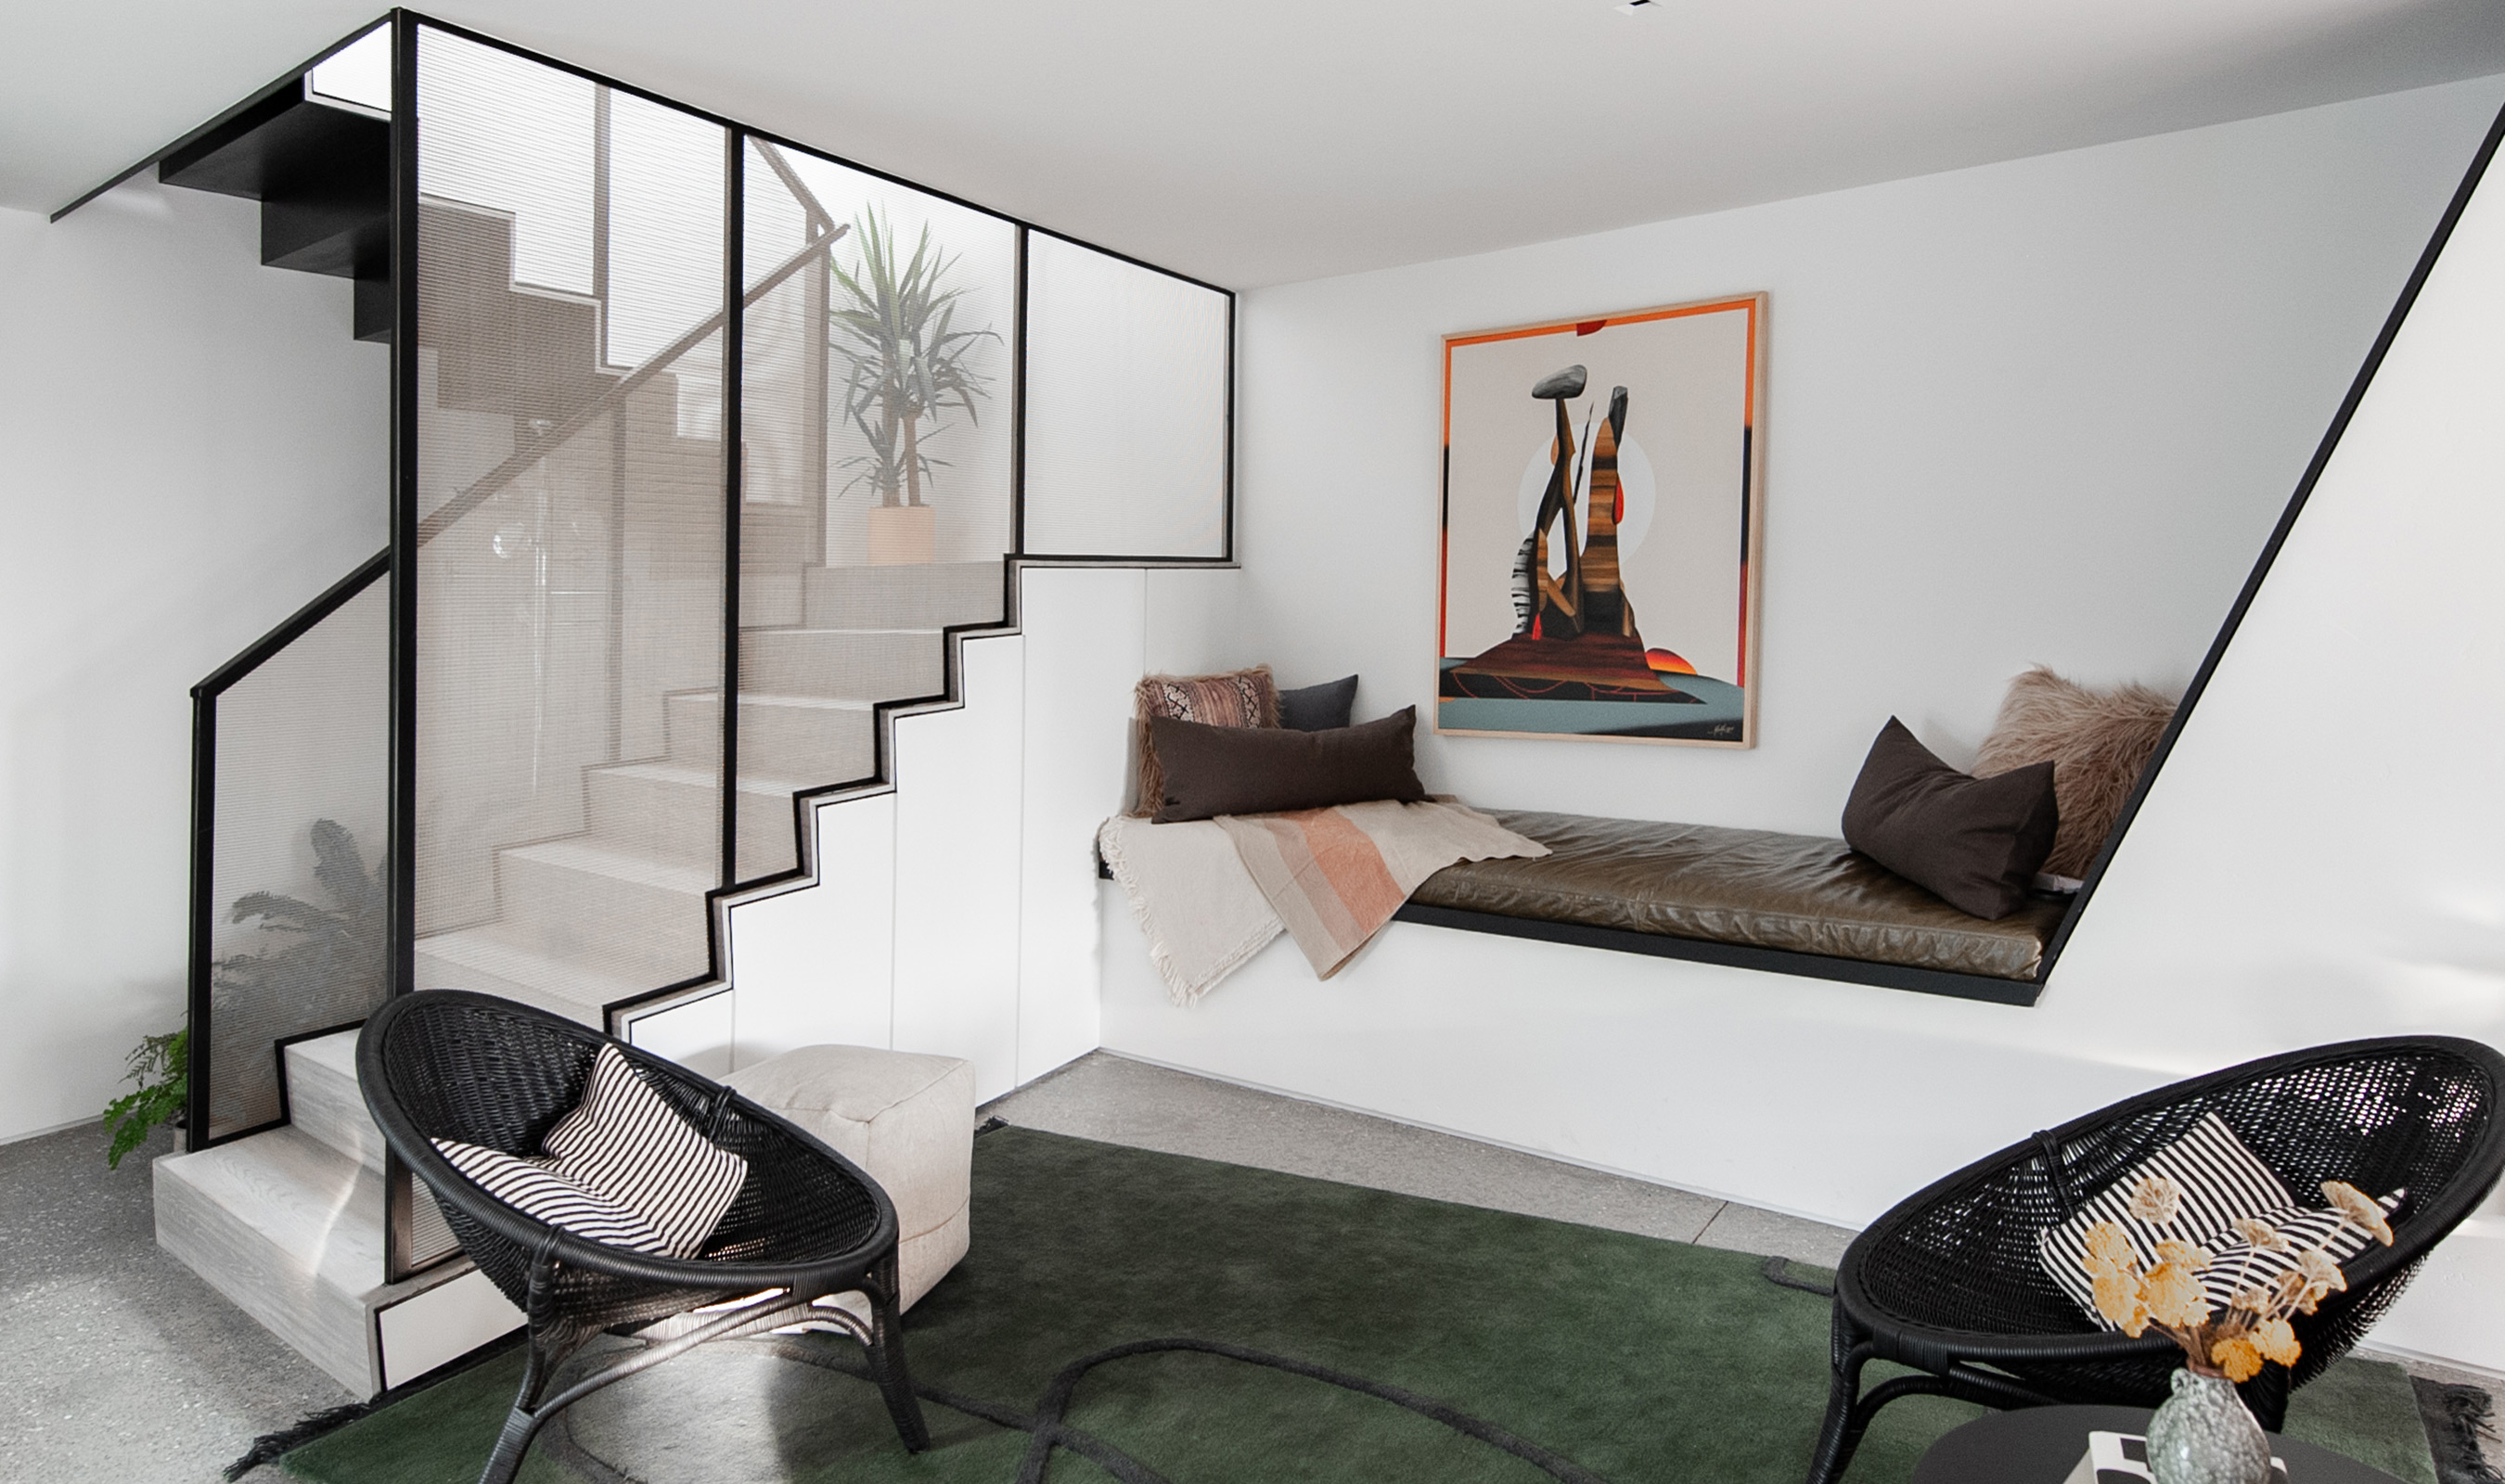 IPZ-25 makes a statement in this California residence.